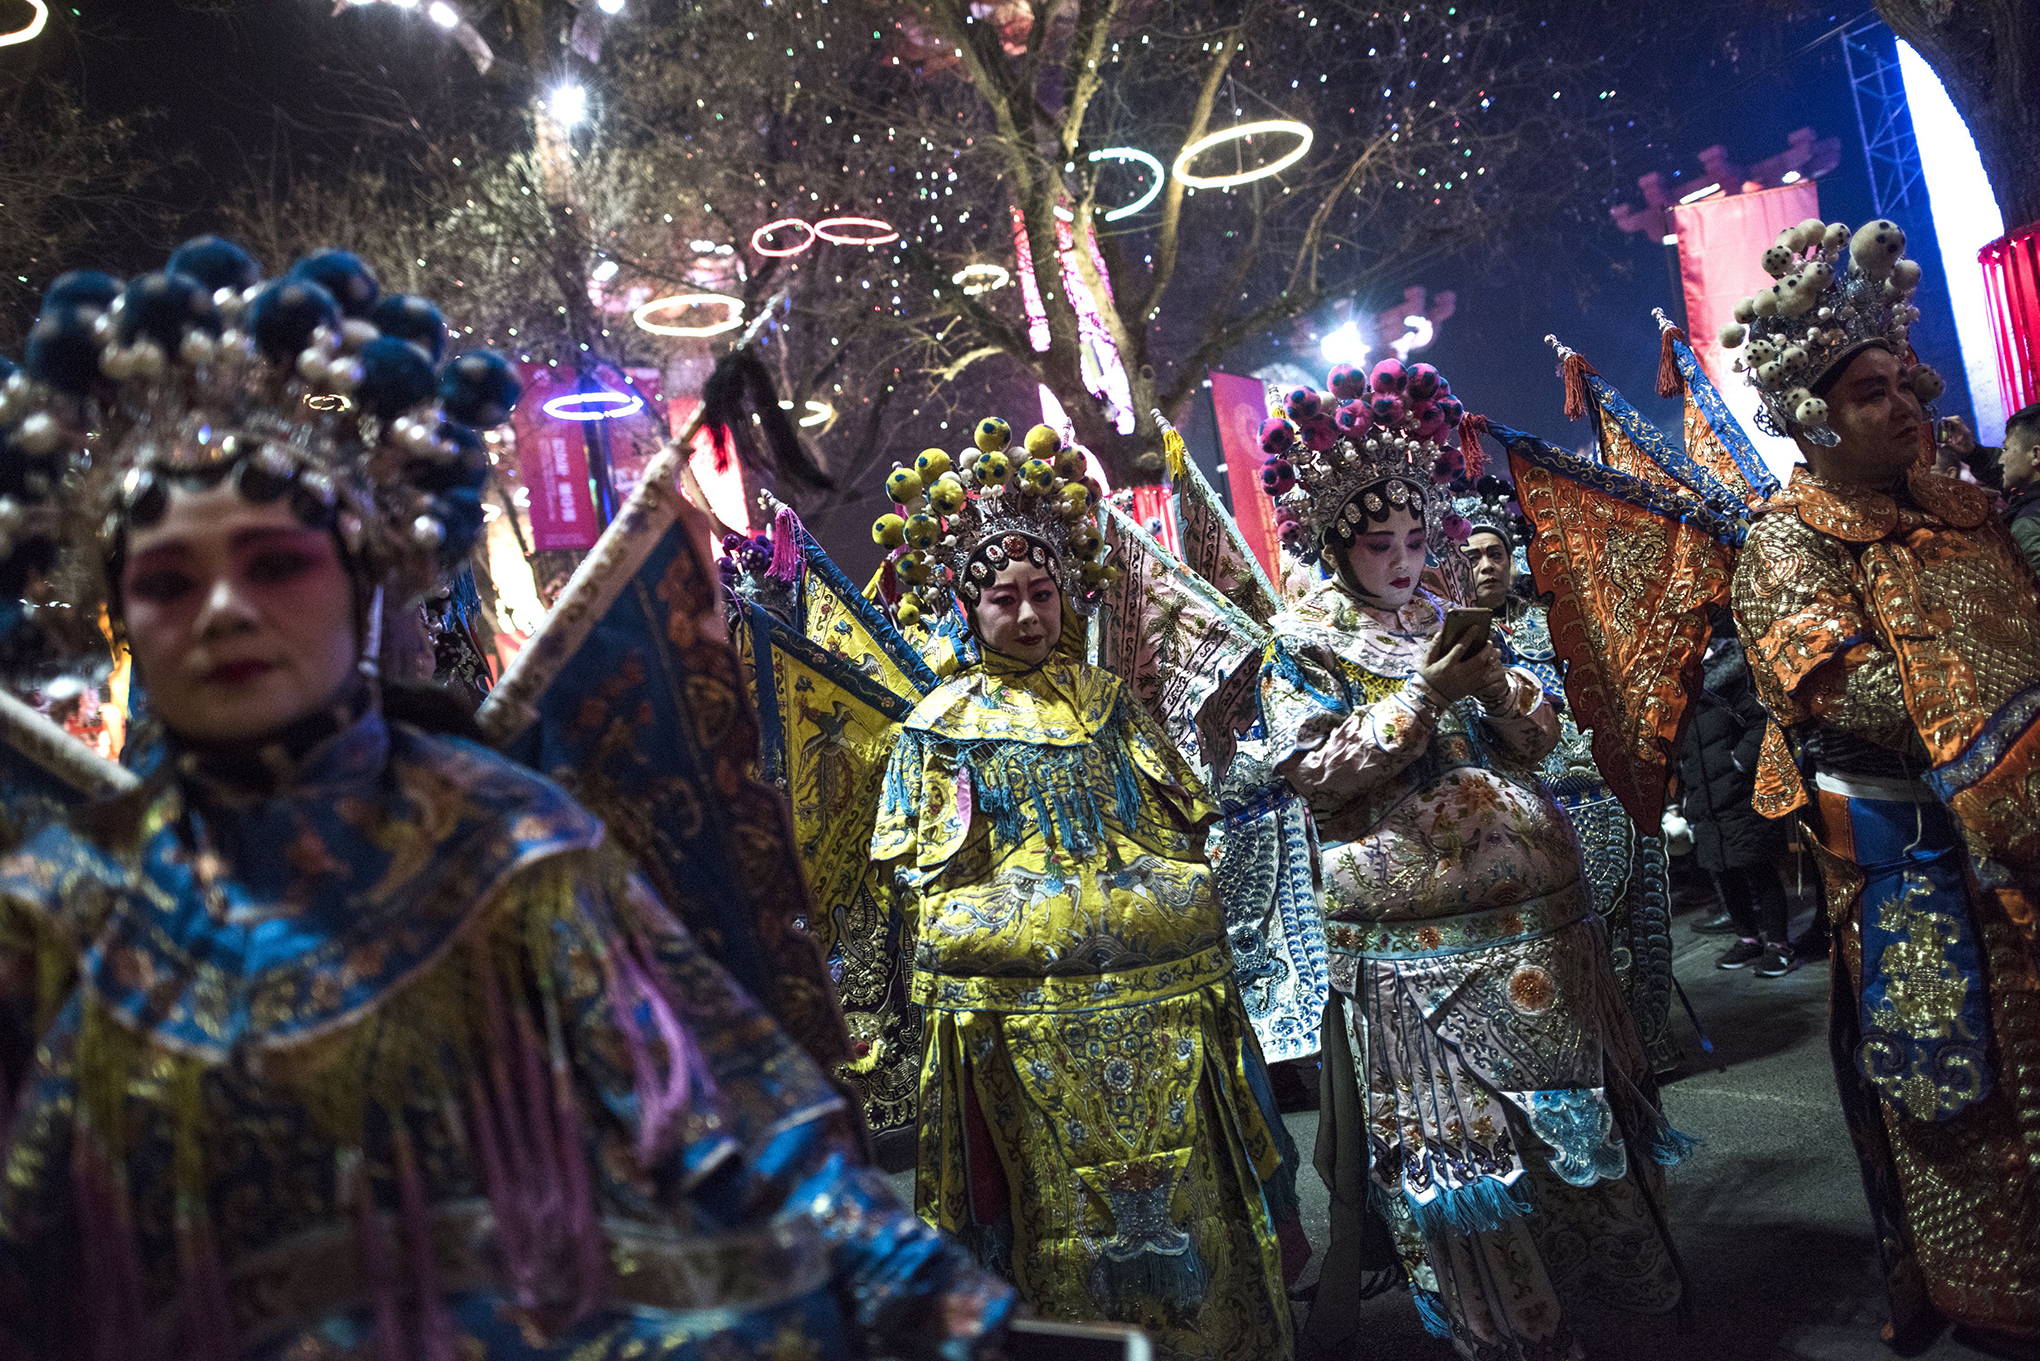 Dancers with traditional Pekin Opera costume, prepare to parade near Tang Paradise park in Xian, Shaanxi province, on Feb. 14, 2018, ahead of the coming Lunar New Year, marking the Year of the Dog.